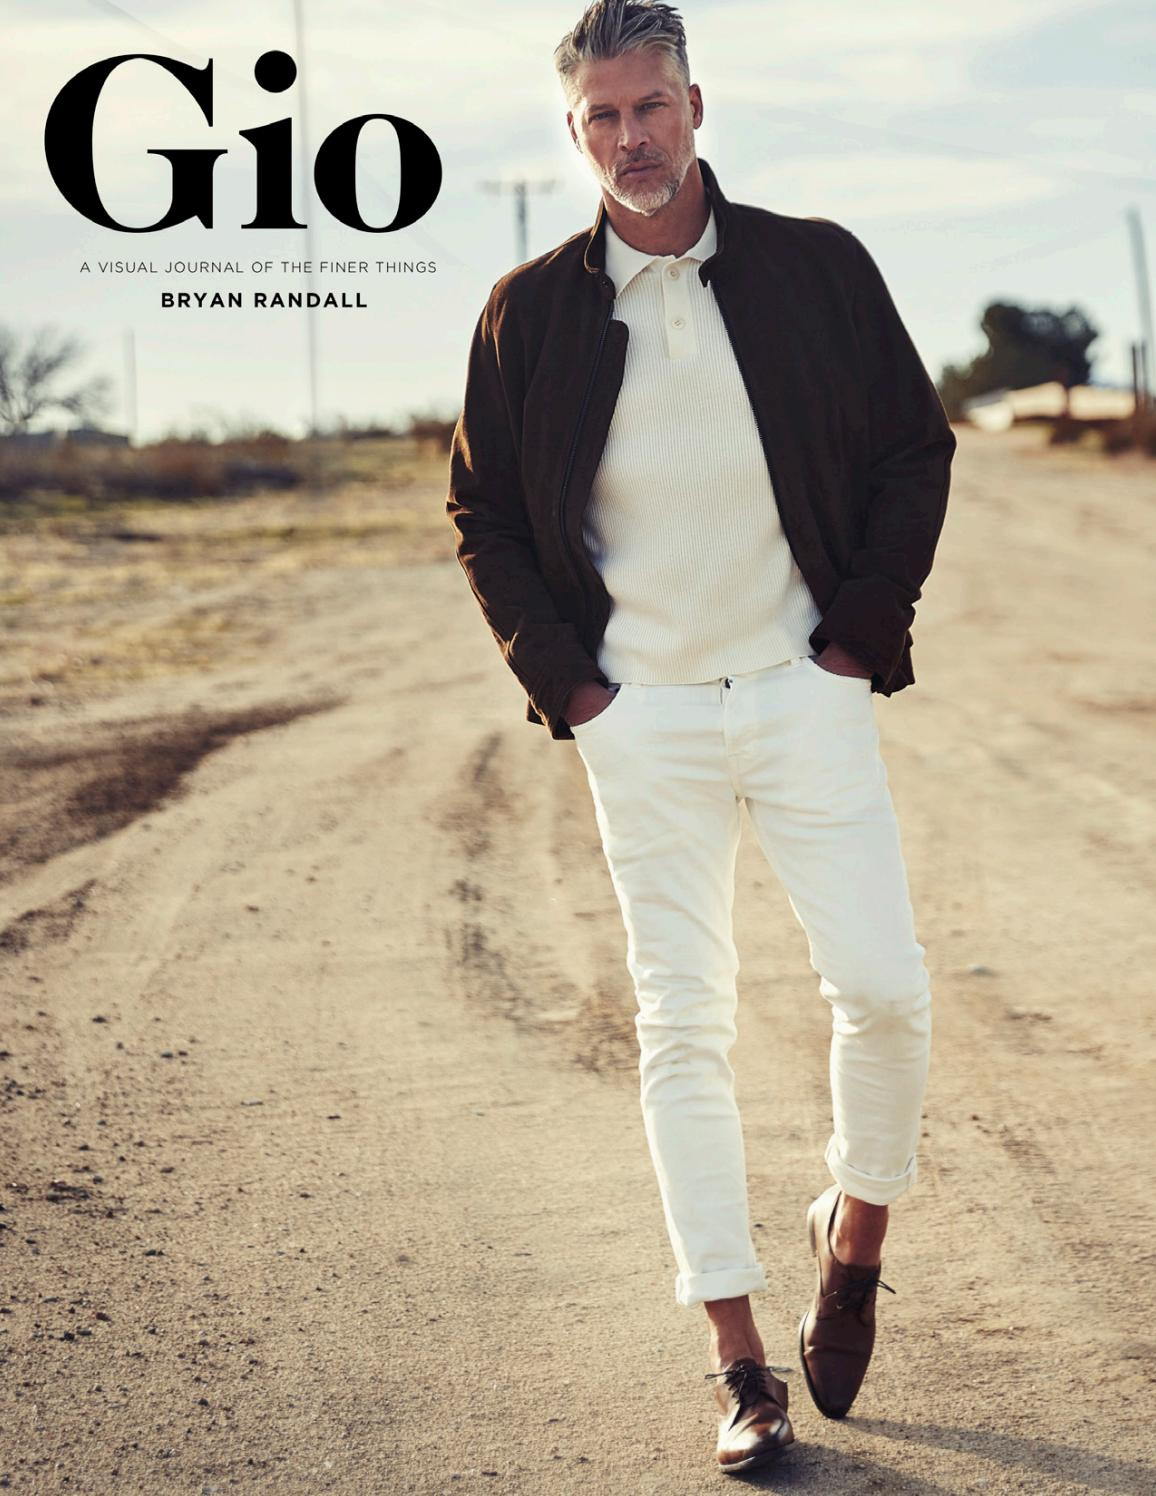 ed7a788eb Gio Journal - Issue 4 Bryan Randall by giojournal - issuu